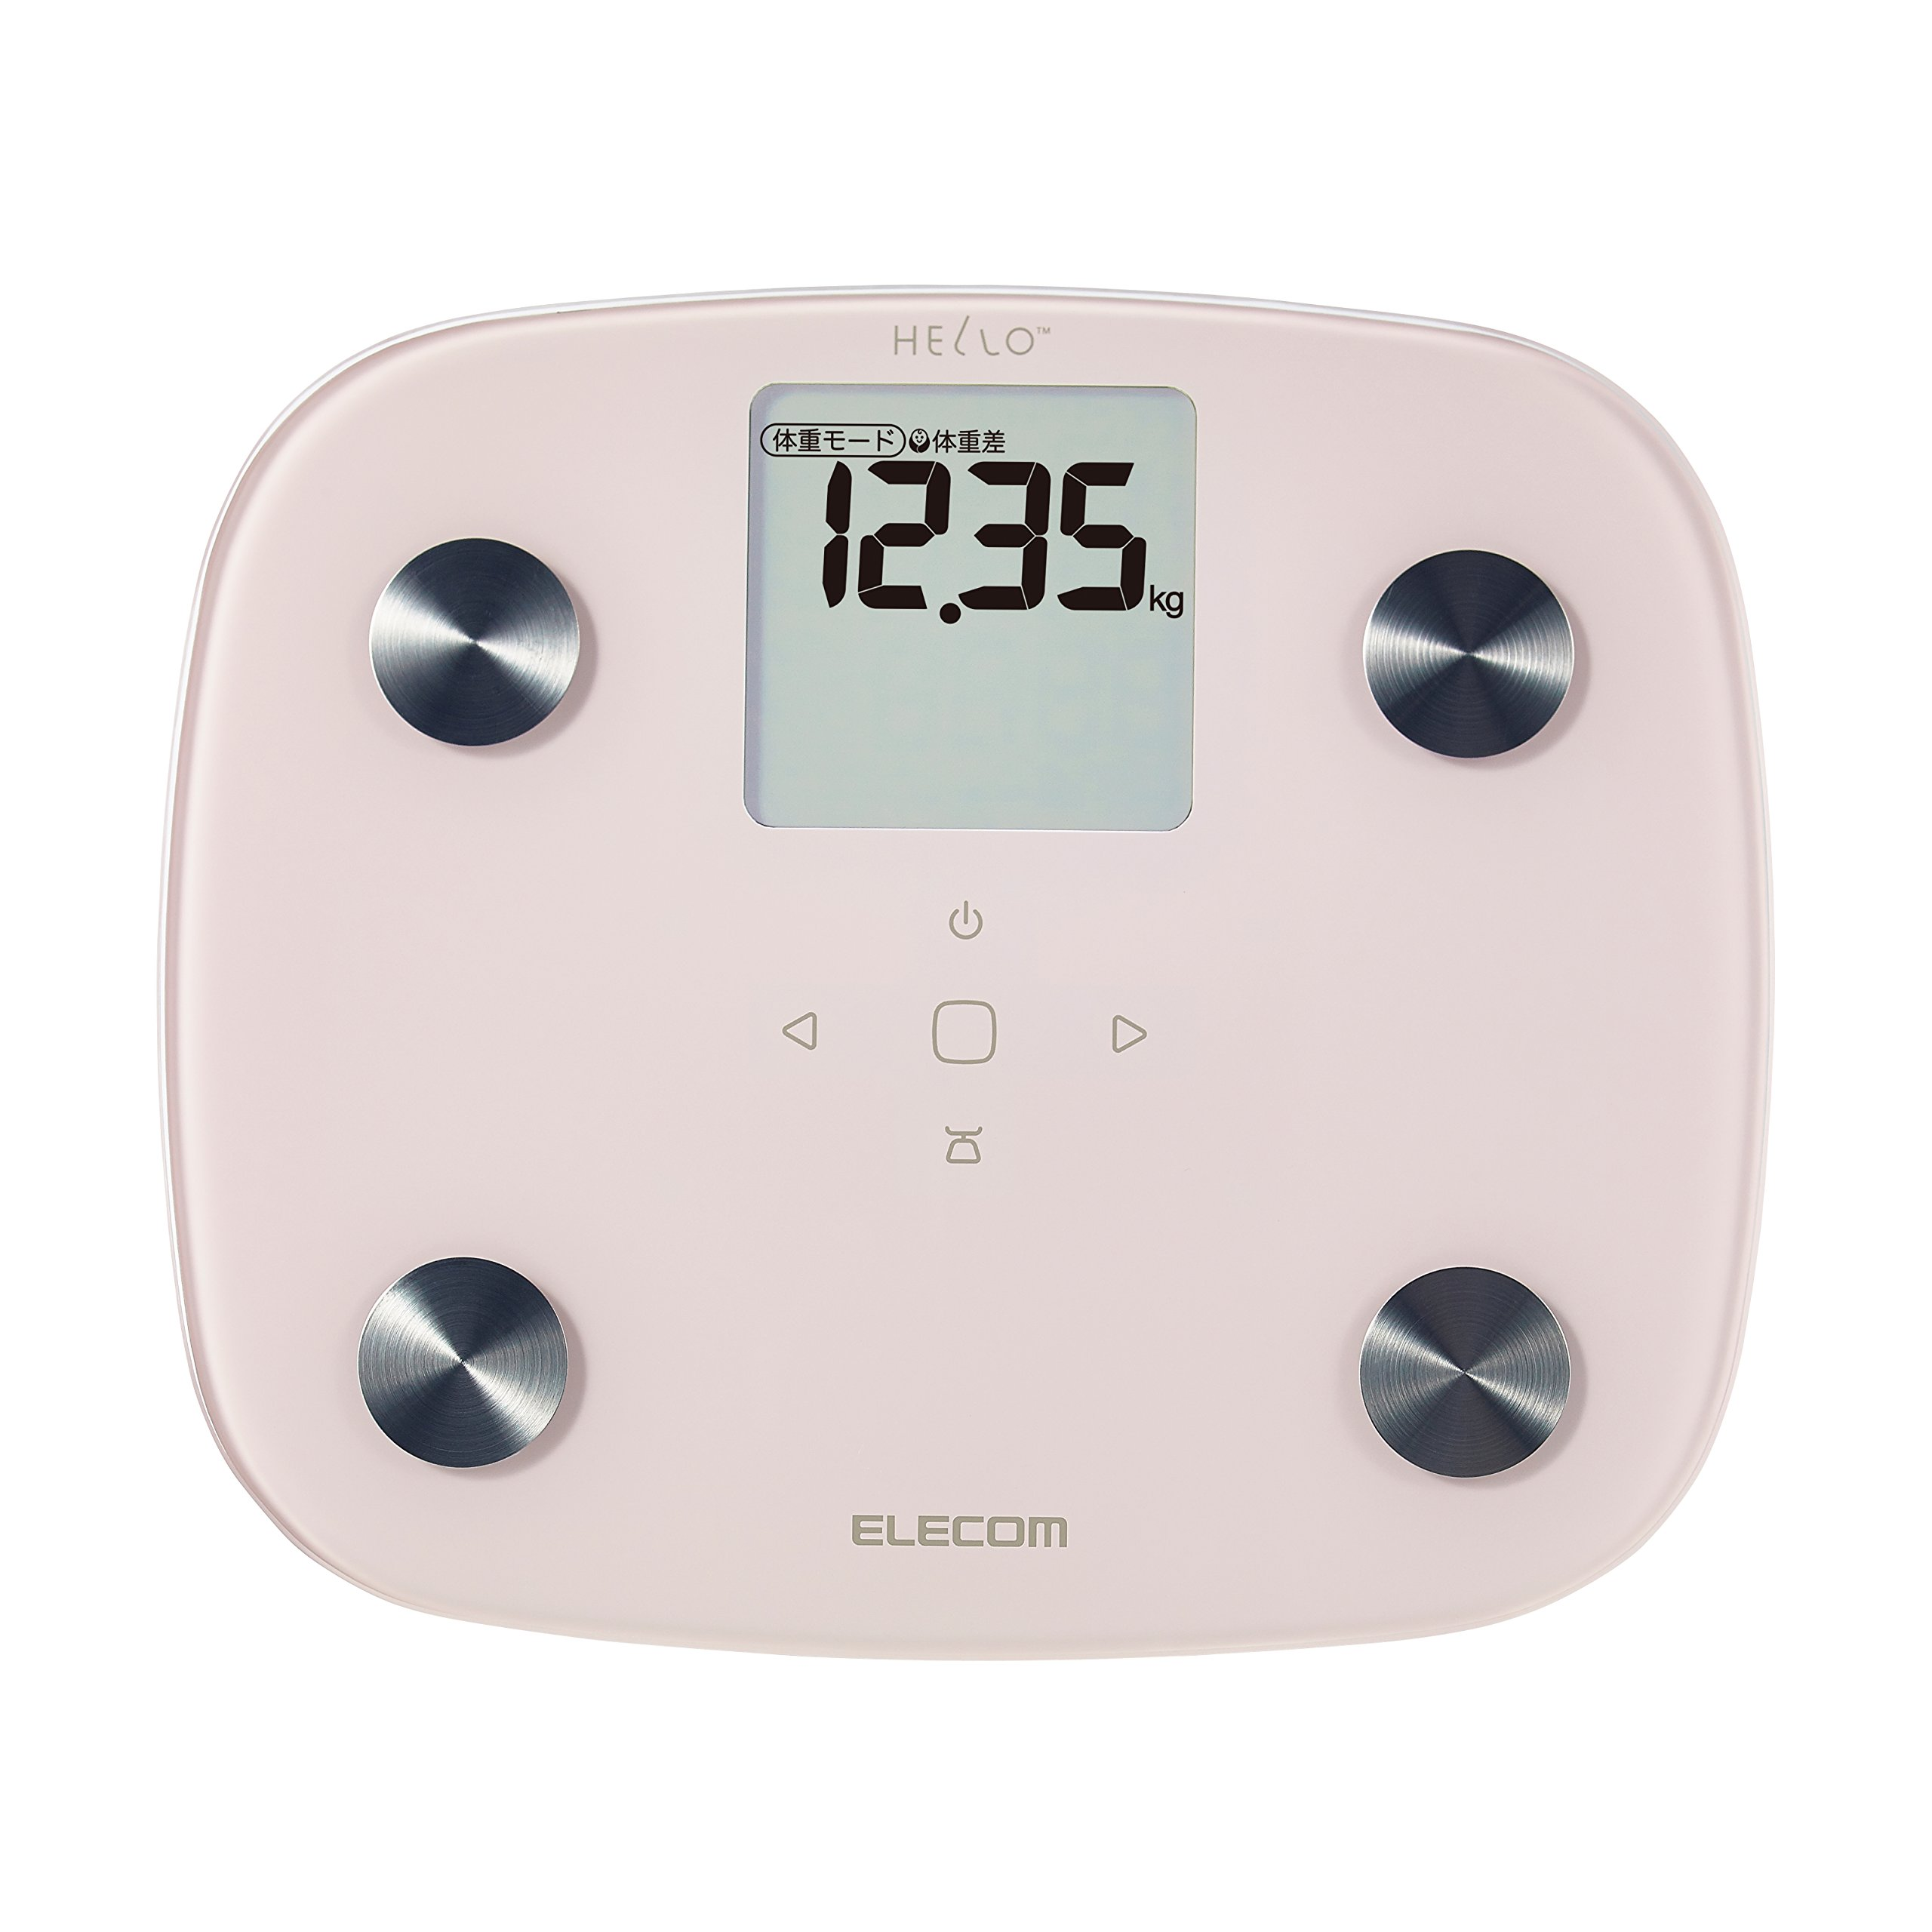 ELECOM WEIGHT AND BODY COMPOSITION ANALYZER ''HELLO Organization Composition'' HCS-FS02PN (PINK)【Japan Domestic genuine products】 by Elecom